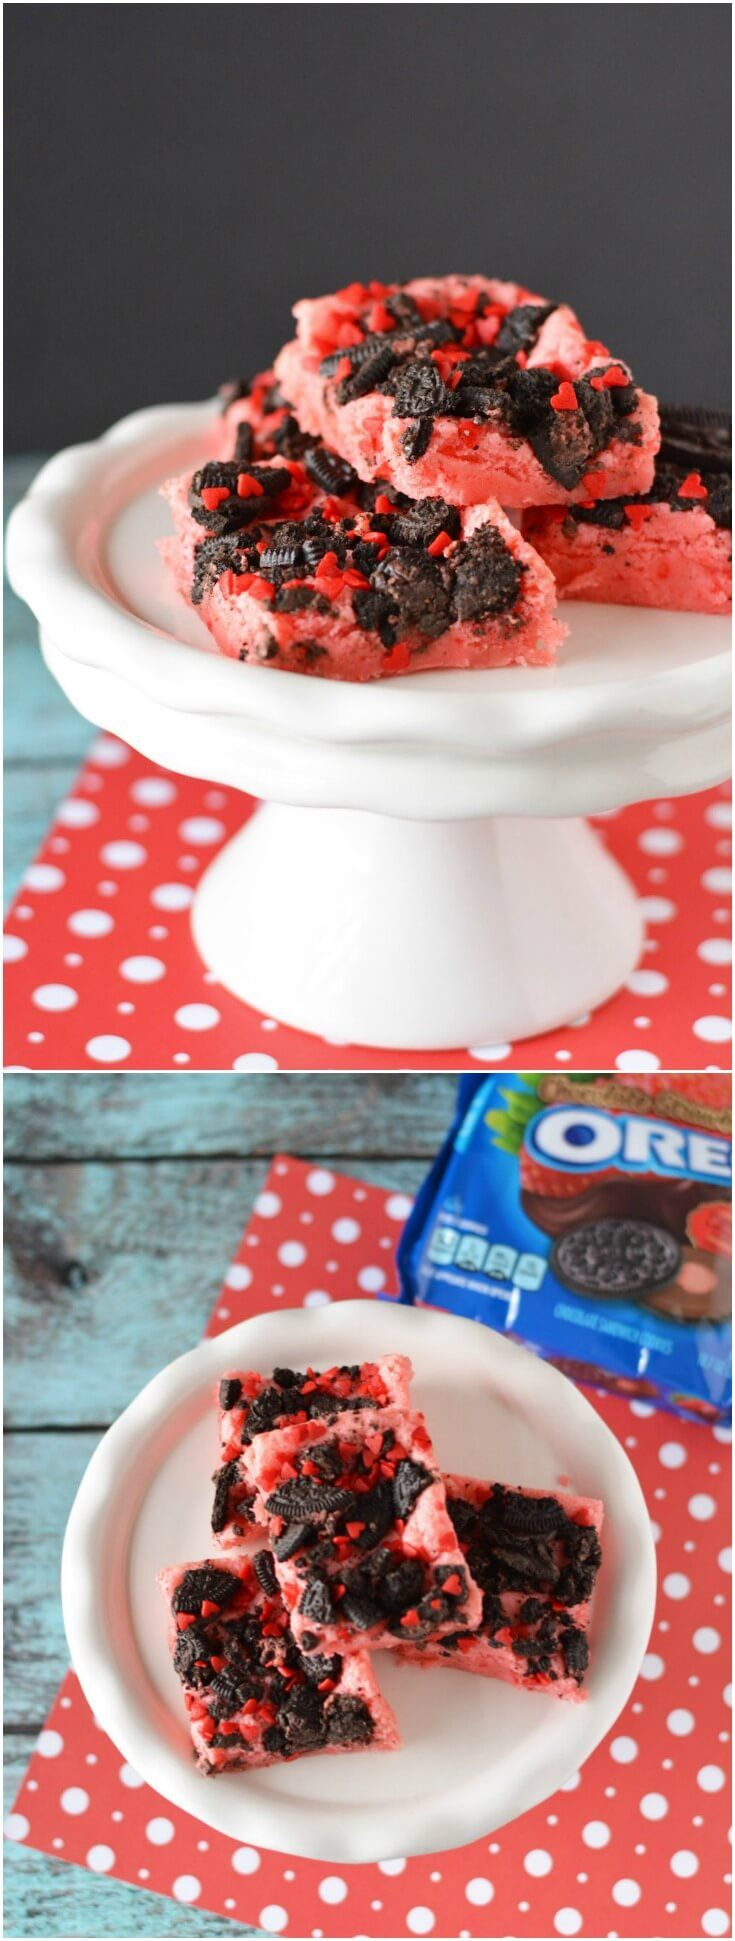 These delicious chocolate strawberry Oreo brownies are so easy to make! Moist with a crunchy topping and sprinkles - perfect for Valentine's Day! via @diy_candy